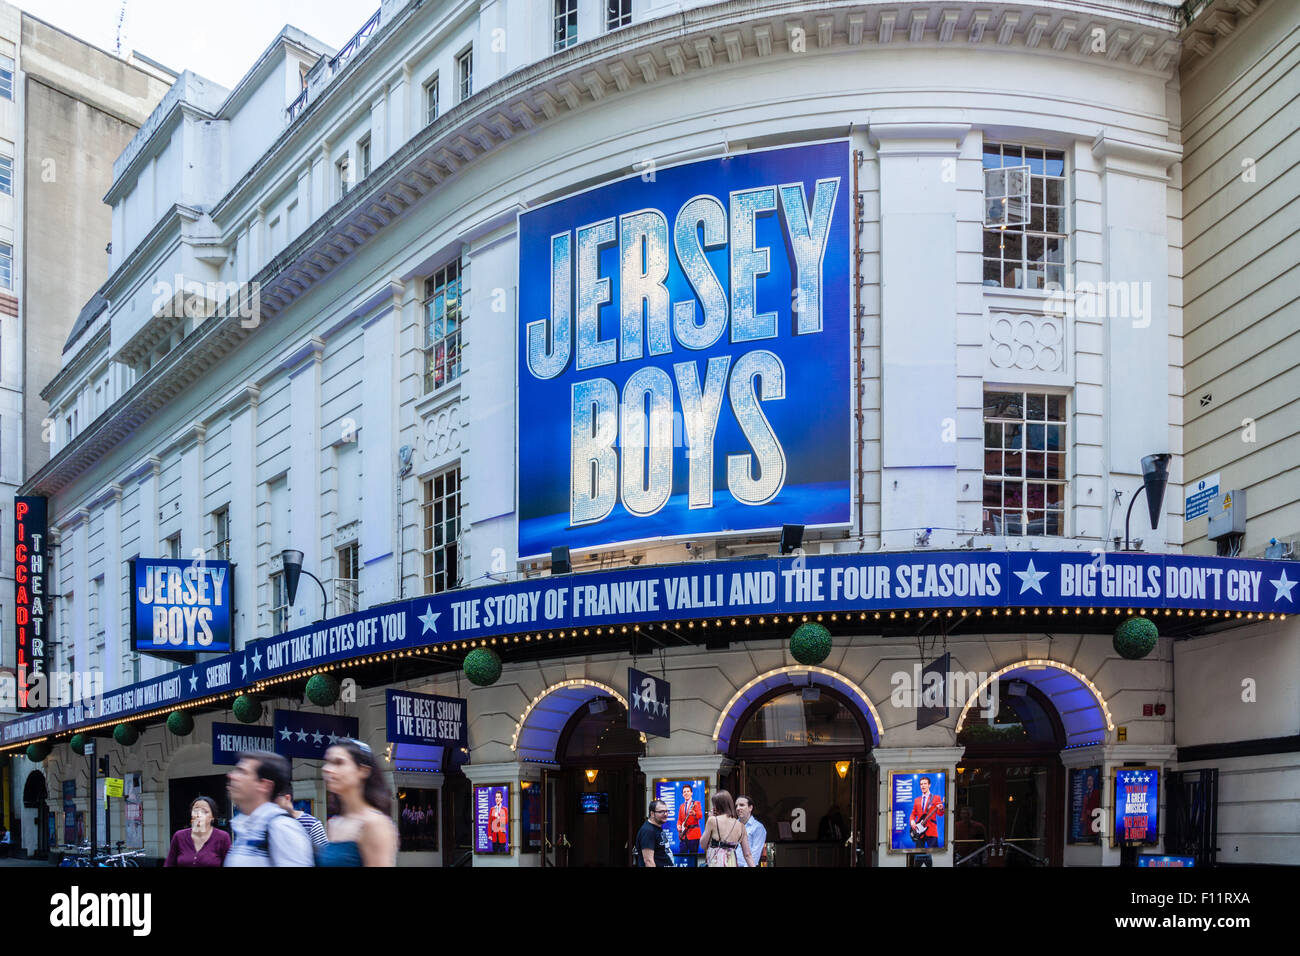 External view of Piccadilly Theatre, Denman Street, London displaying signs for the hit musical, Jersey Boys. - Stock Image